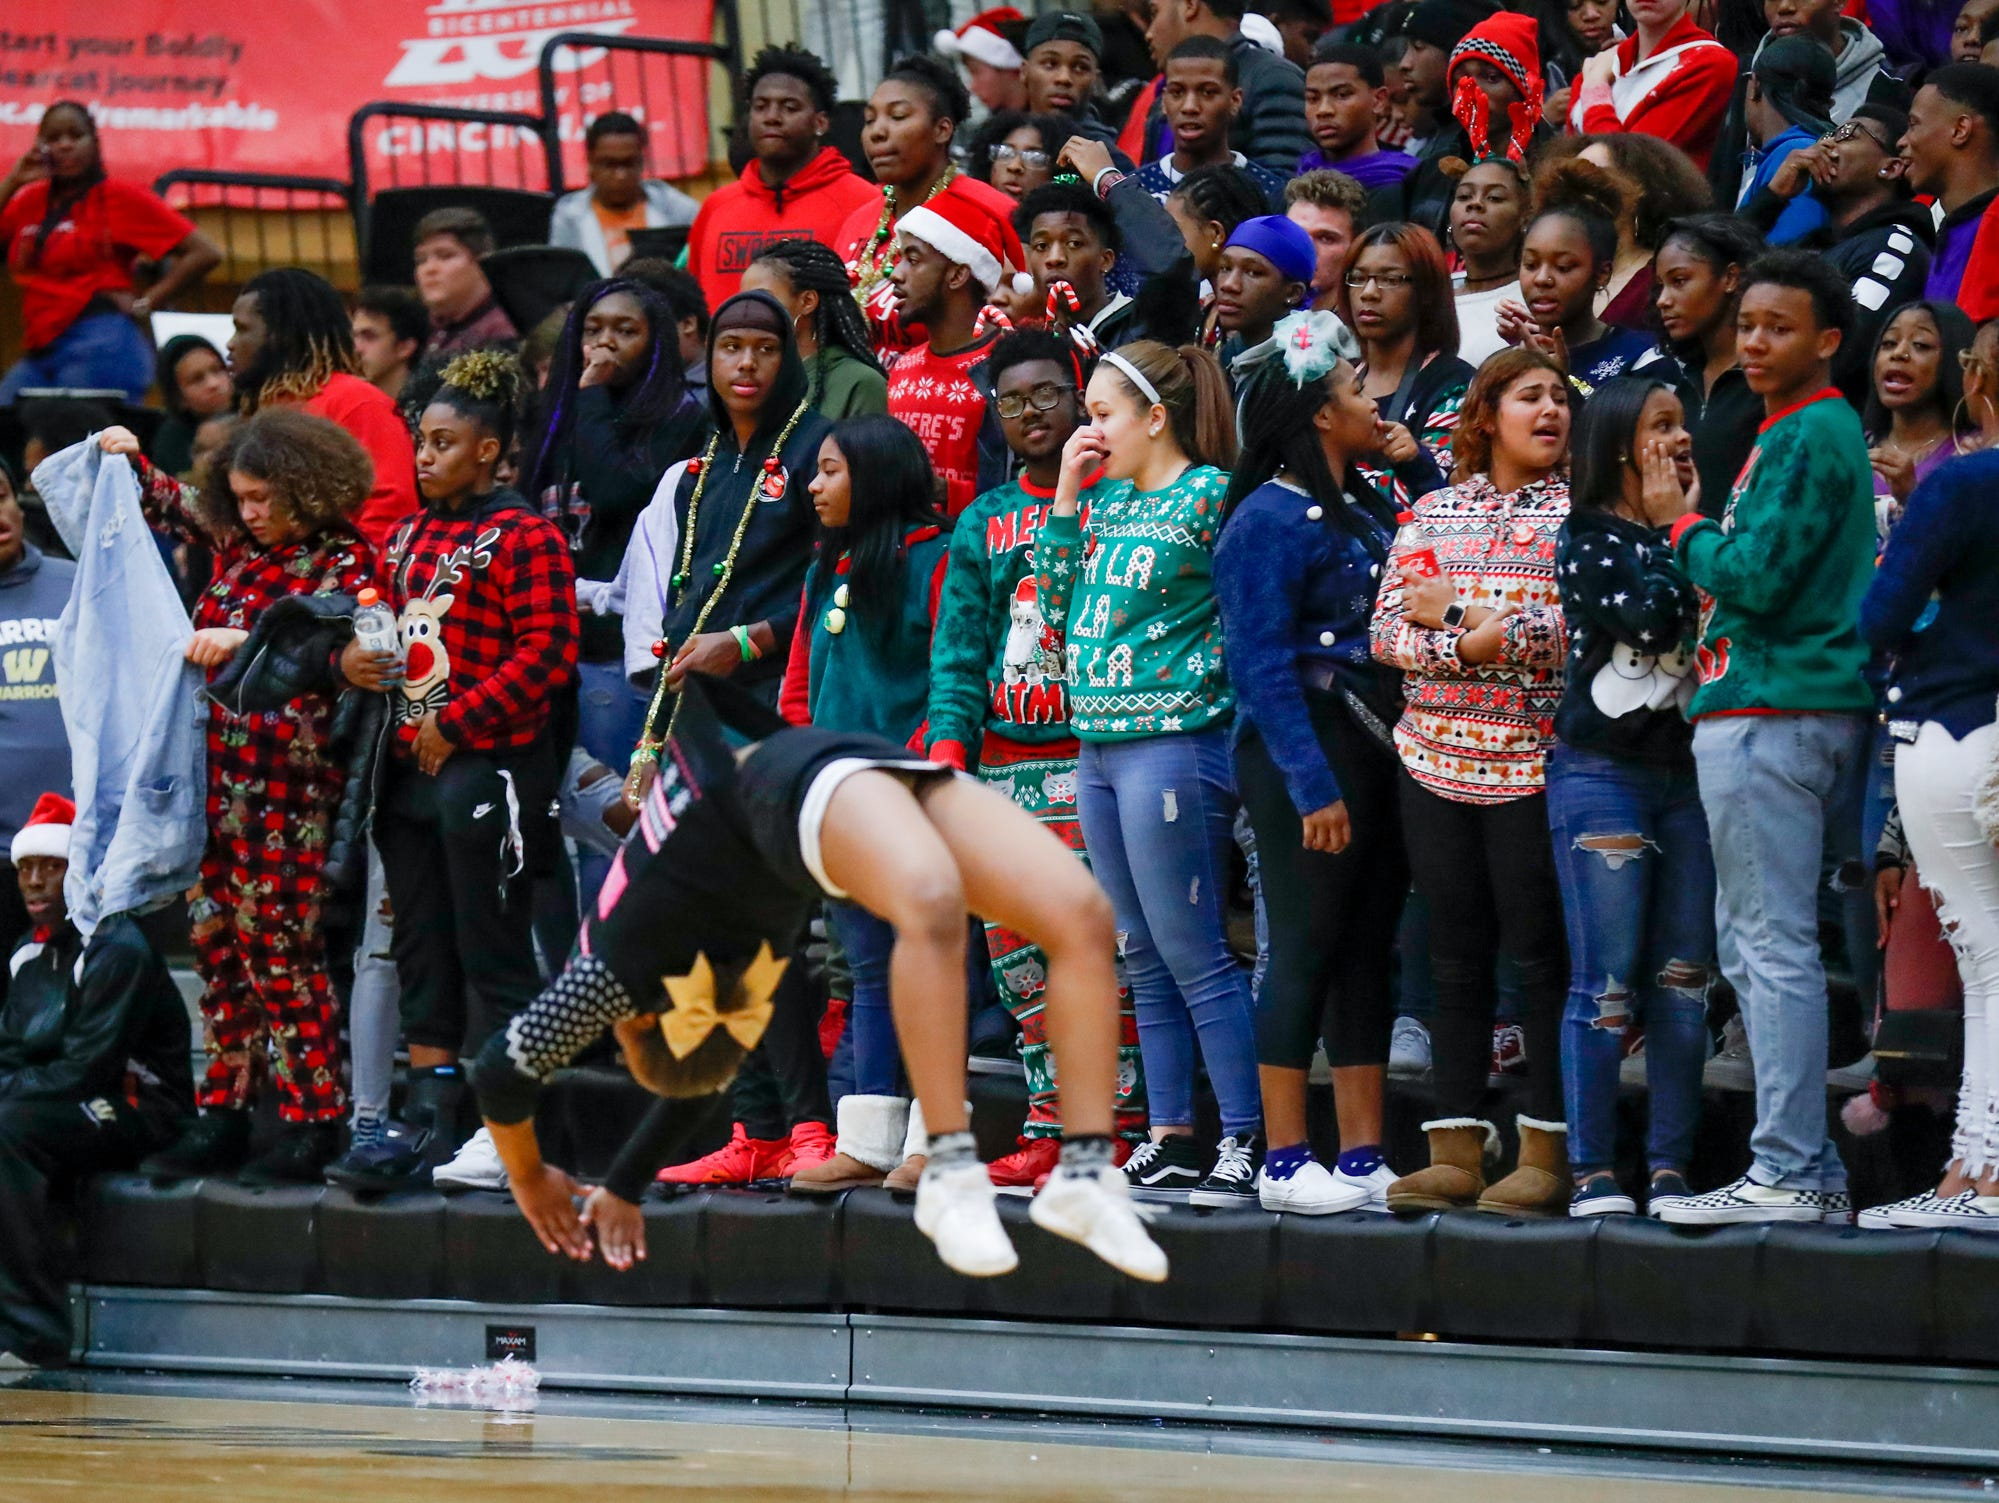 A cheerleader tumbles while wearing an ugly Christmas Sweater during a varsity boys basketball game between Cathedral High School and Warren Central High School at Warren Central on Friday, Dec. 7, 2018.